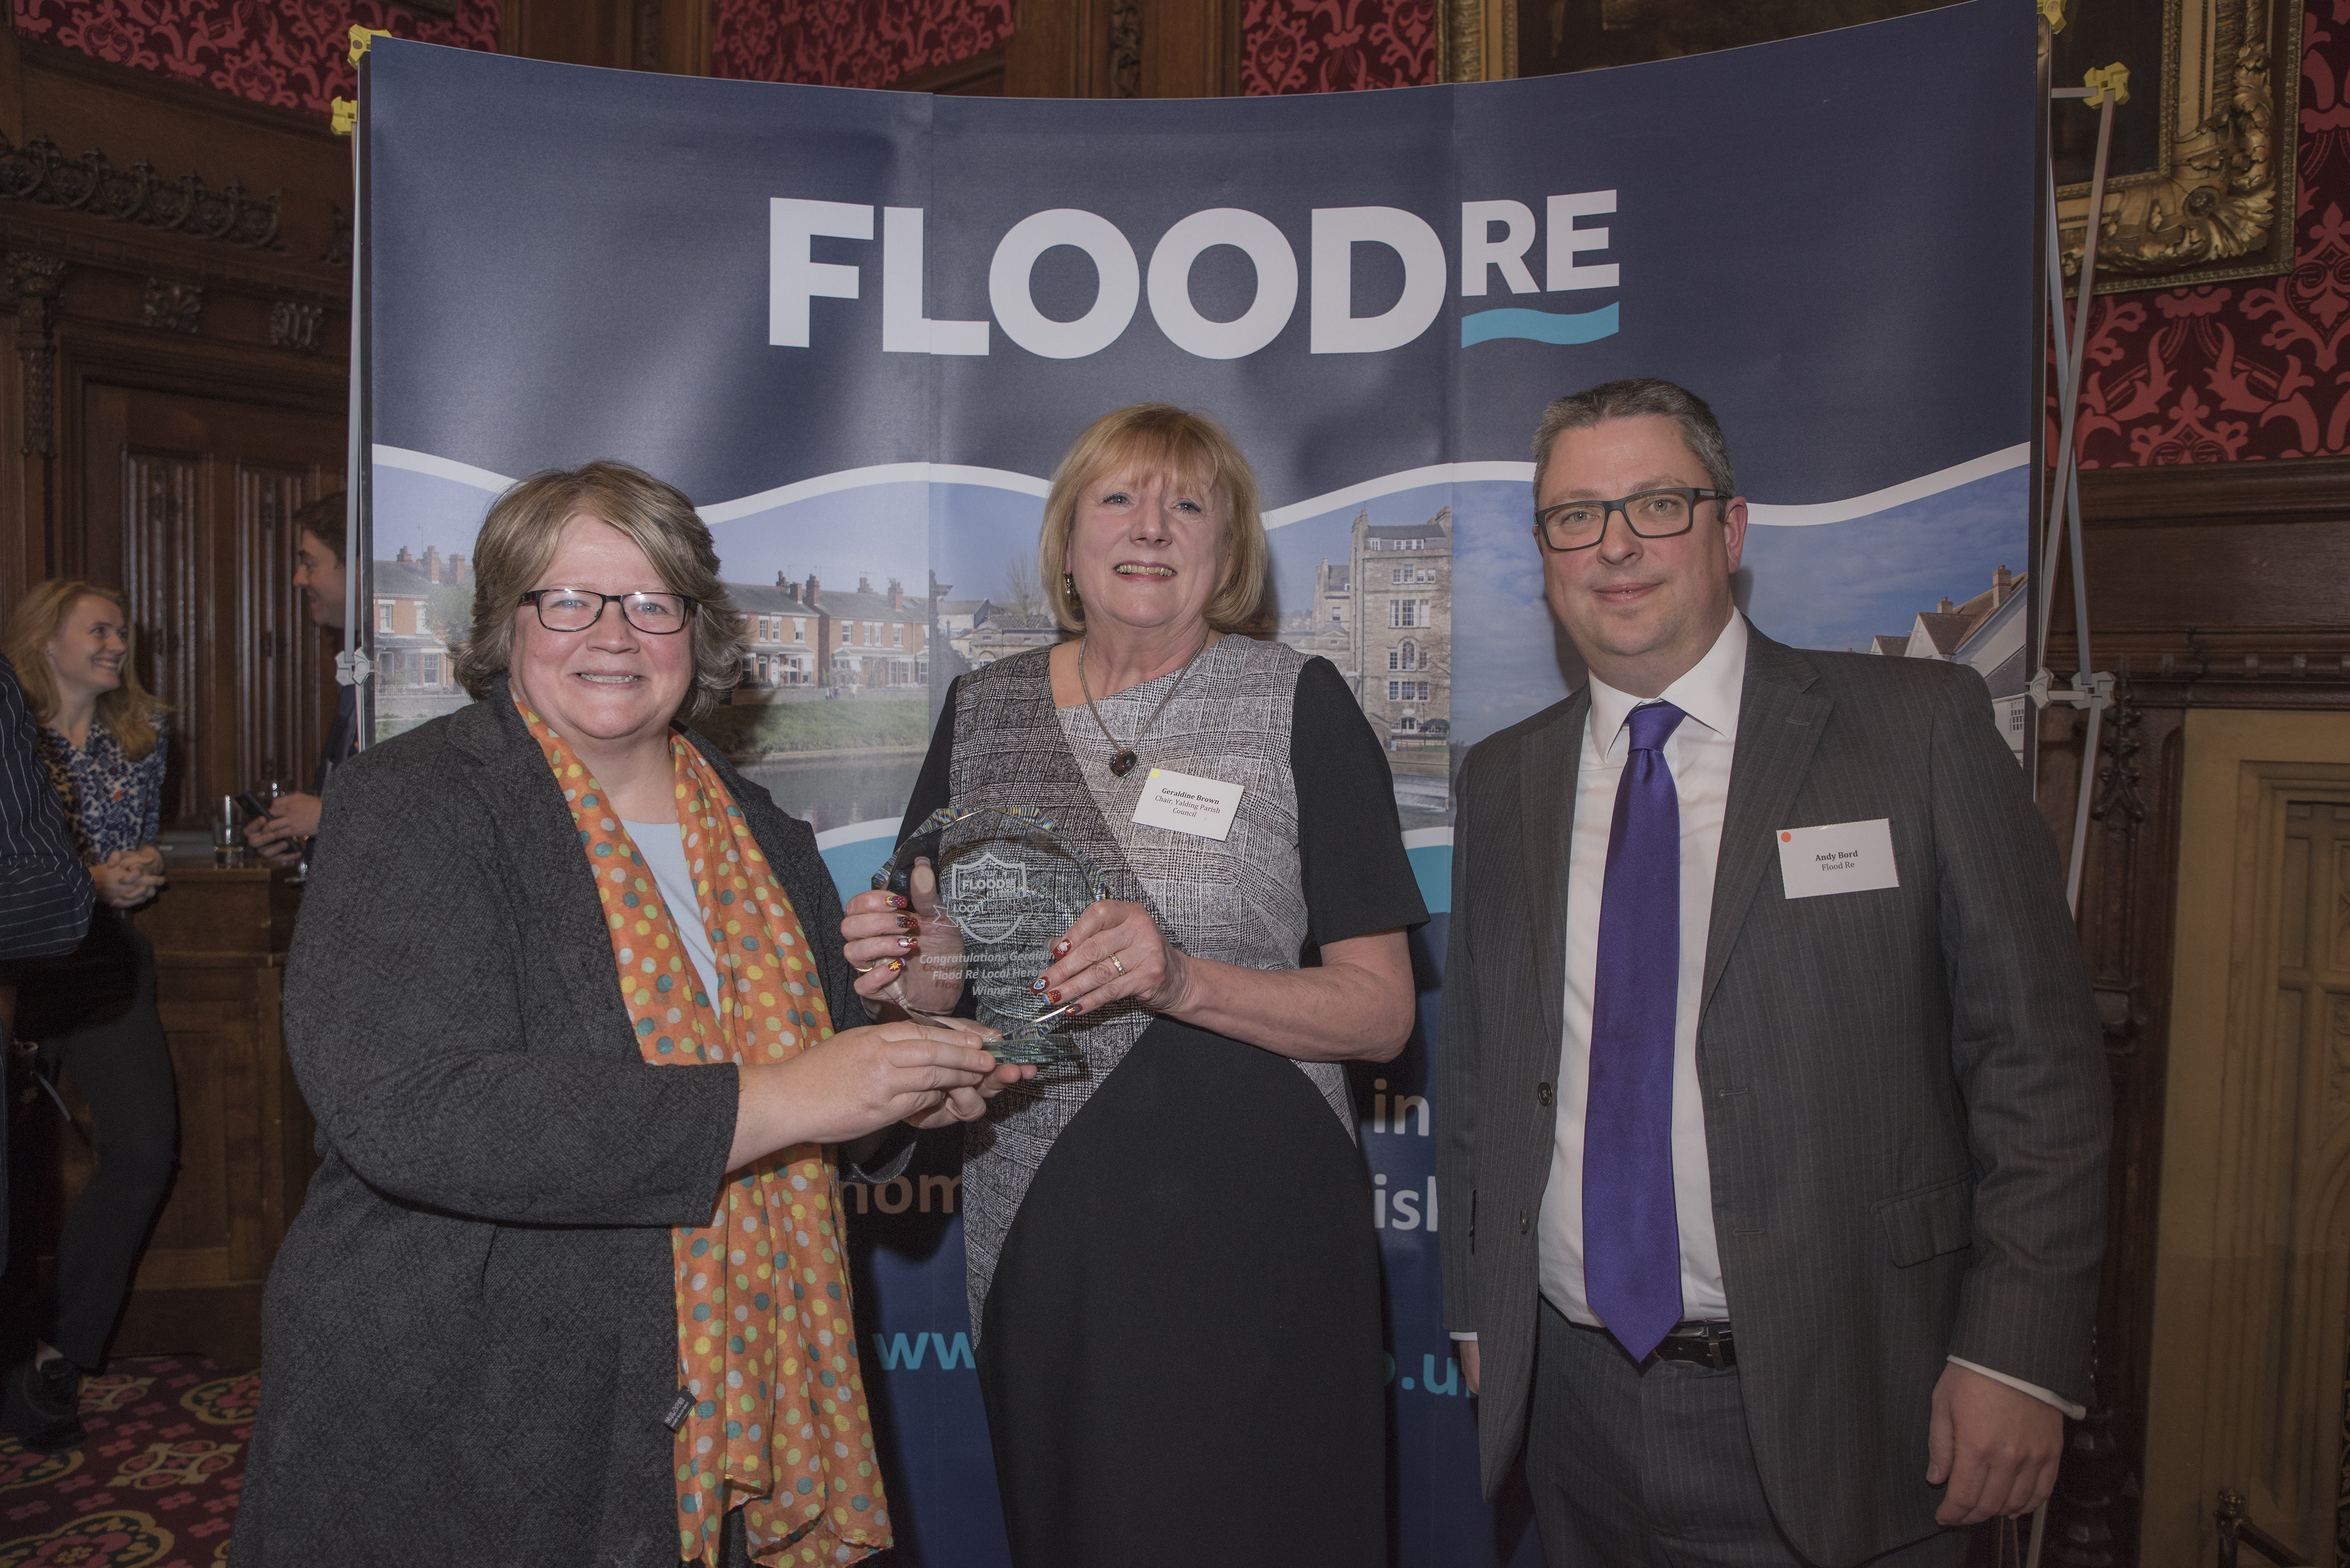 Floods Minister presents Geraldine Brown with her Flood Re Local Heroes Award